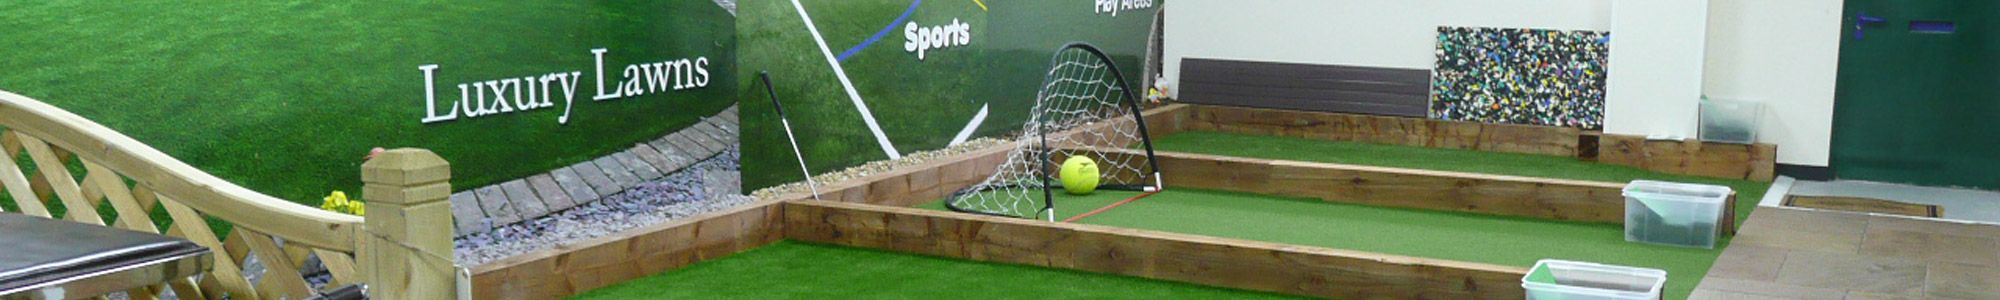 Artificial grass display in Liverpool